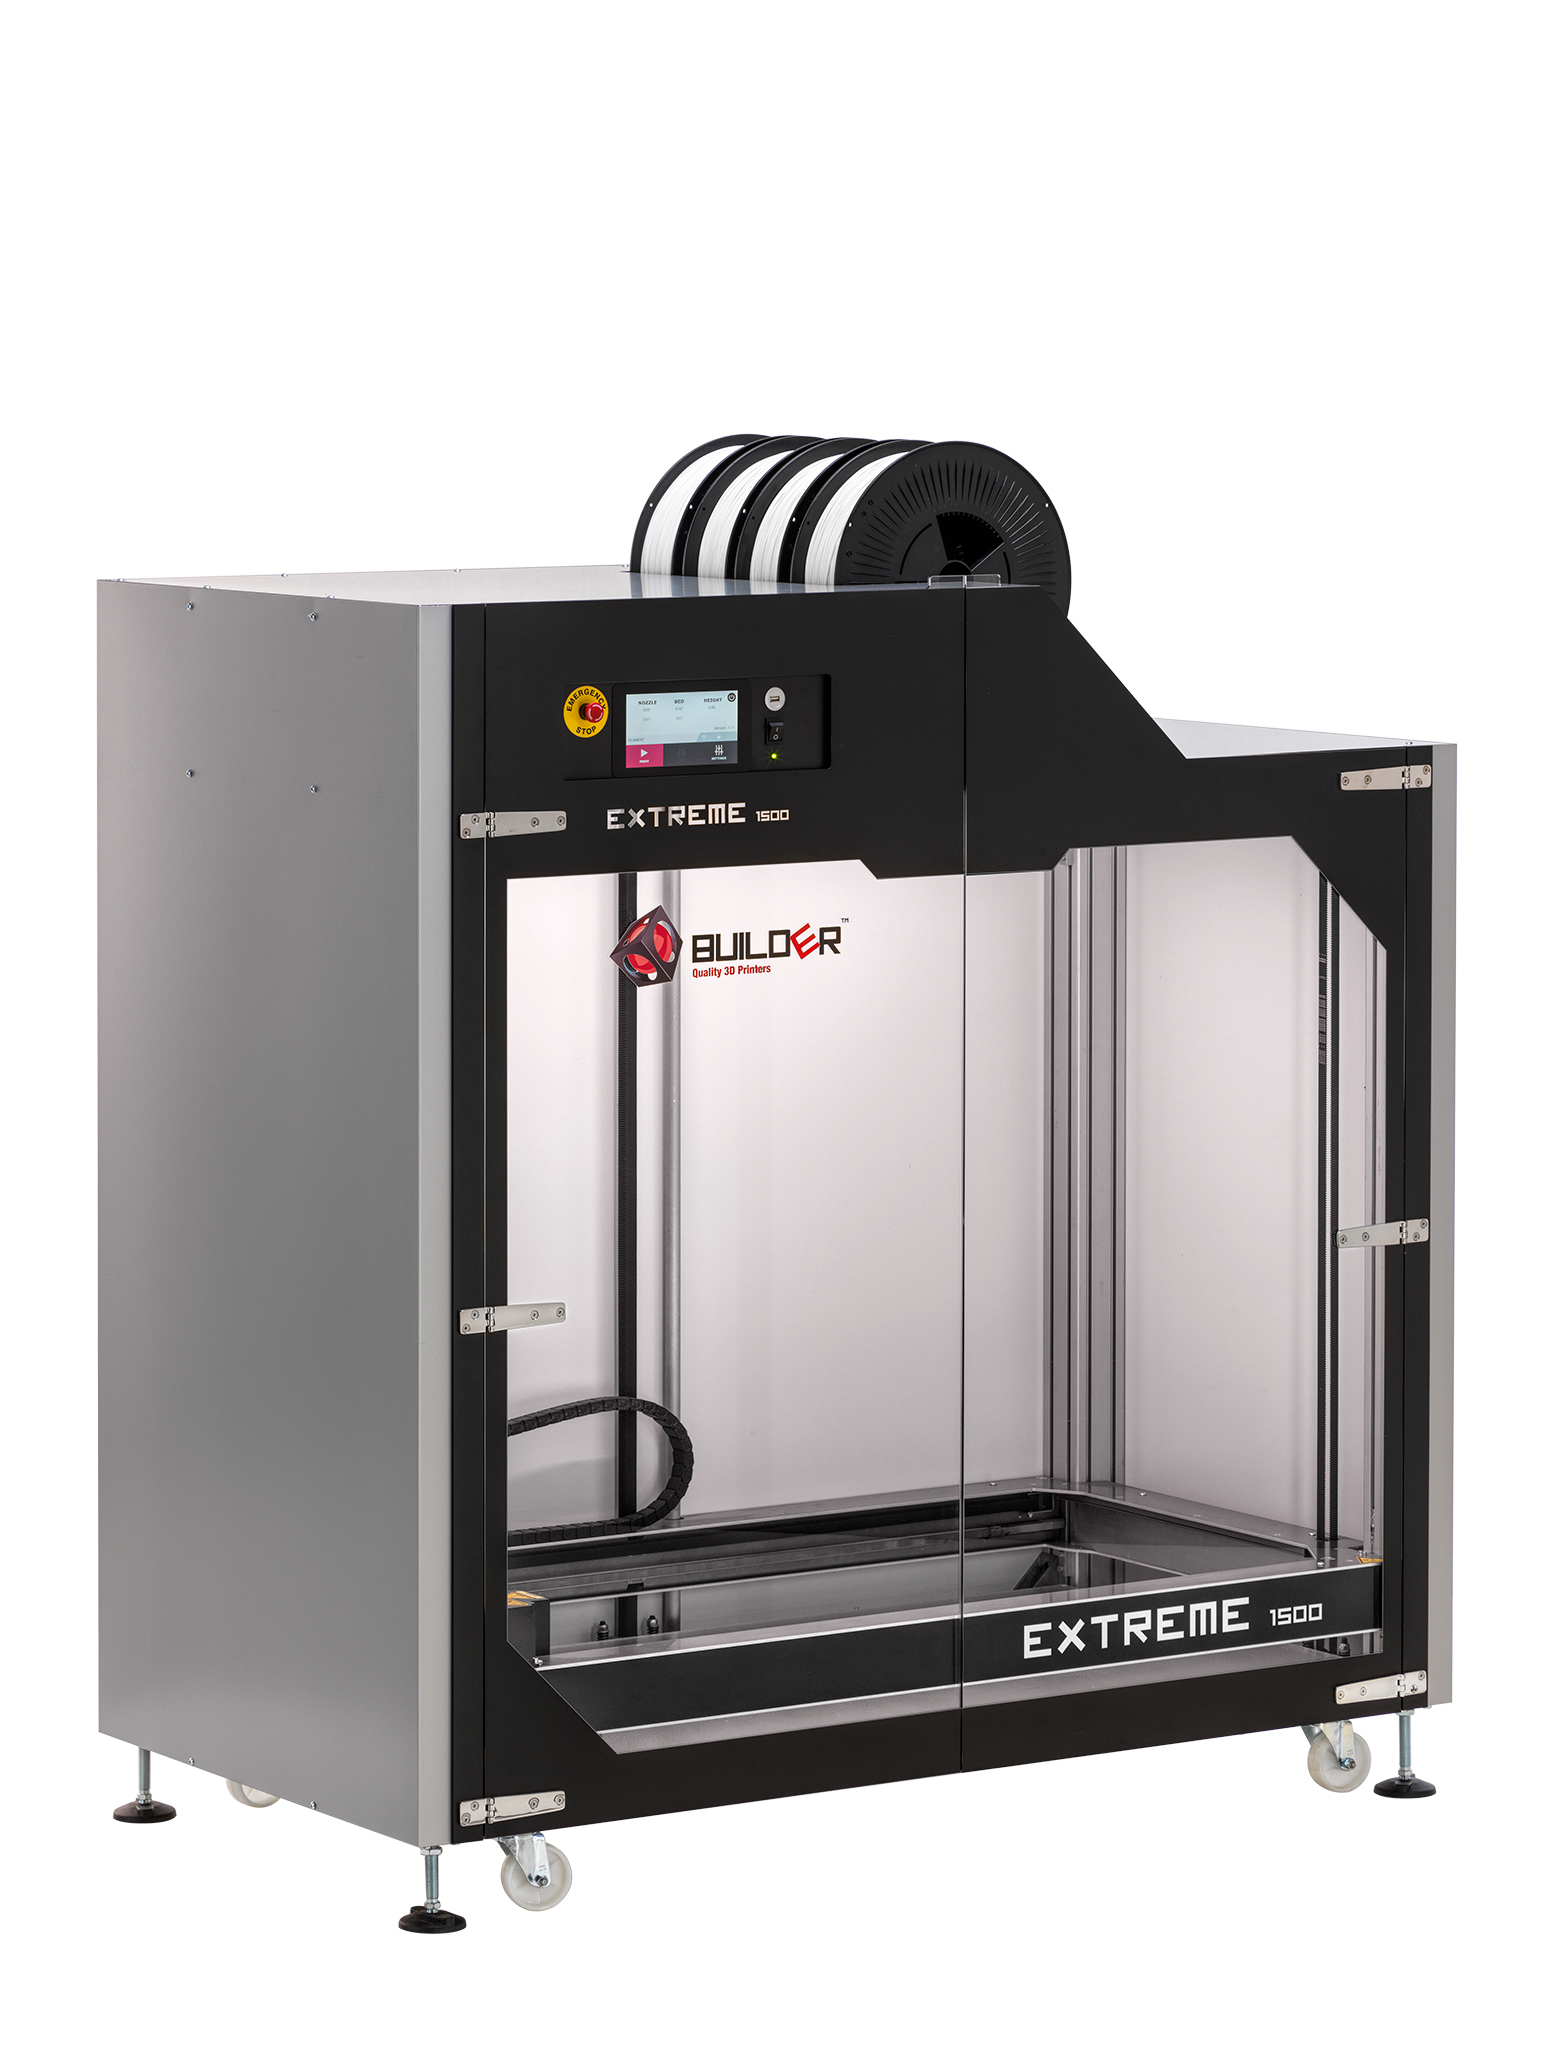 Builder Extreme 1500 PRO - Large Scale 3D printing - XL 3D Printing